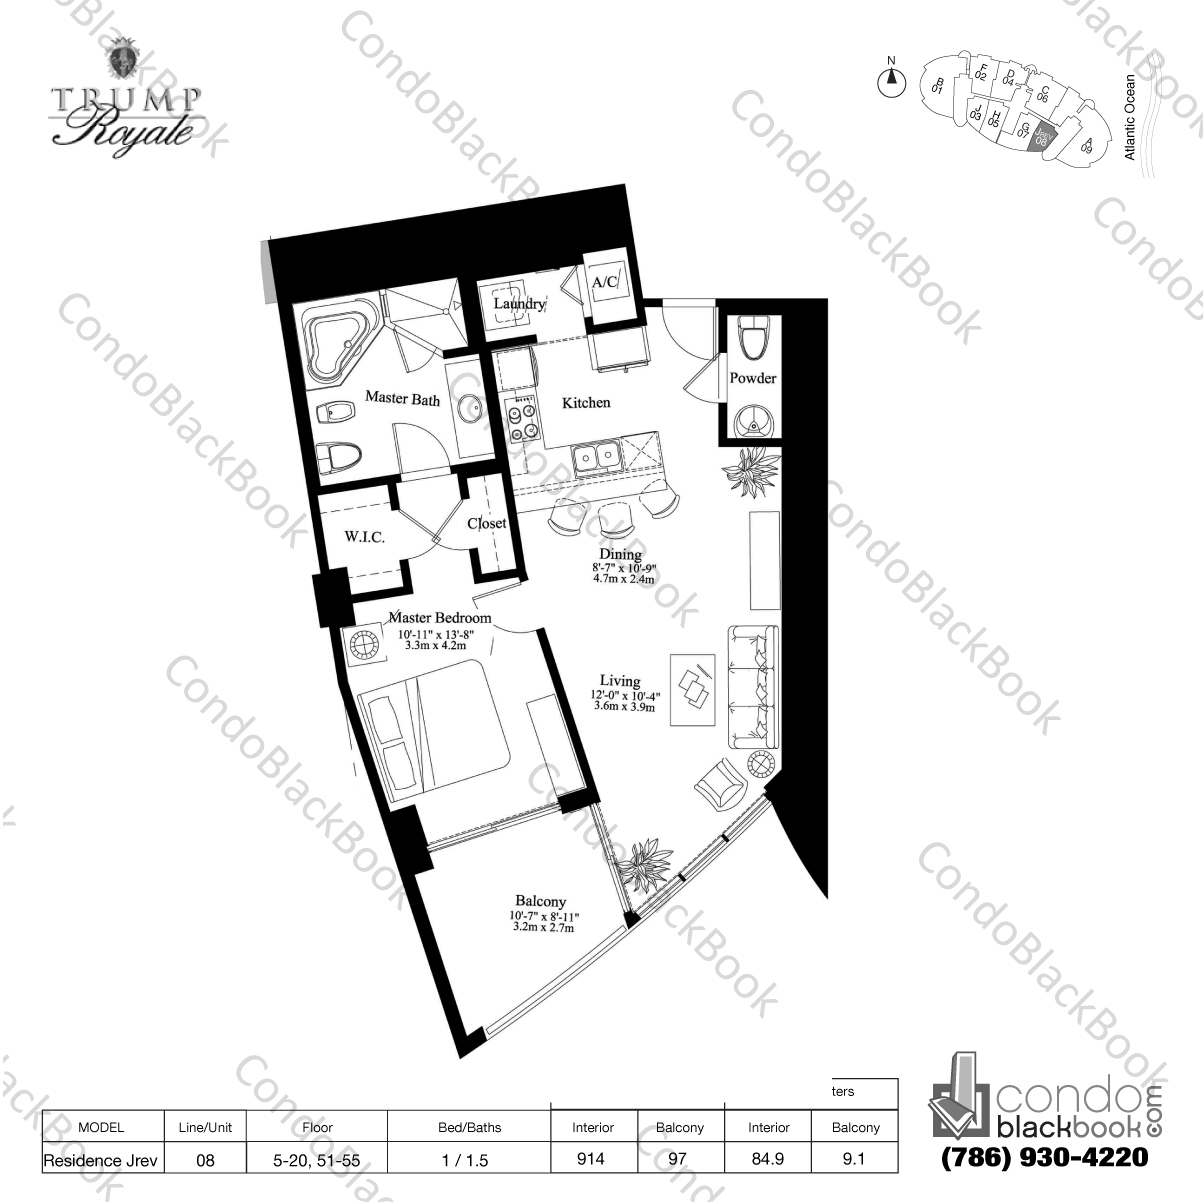 Floor plan for Trump Royale Sunny Isles Beach, model Residence Jrev, line 08, 1 / 1.5 bedrooms, 914 sq ft